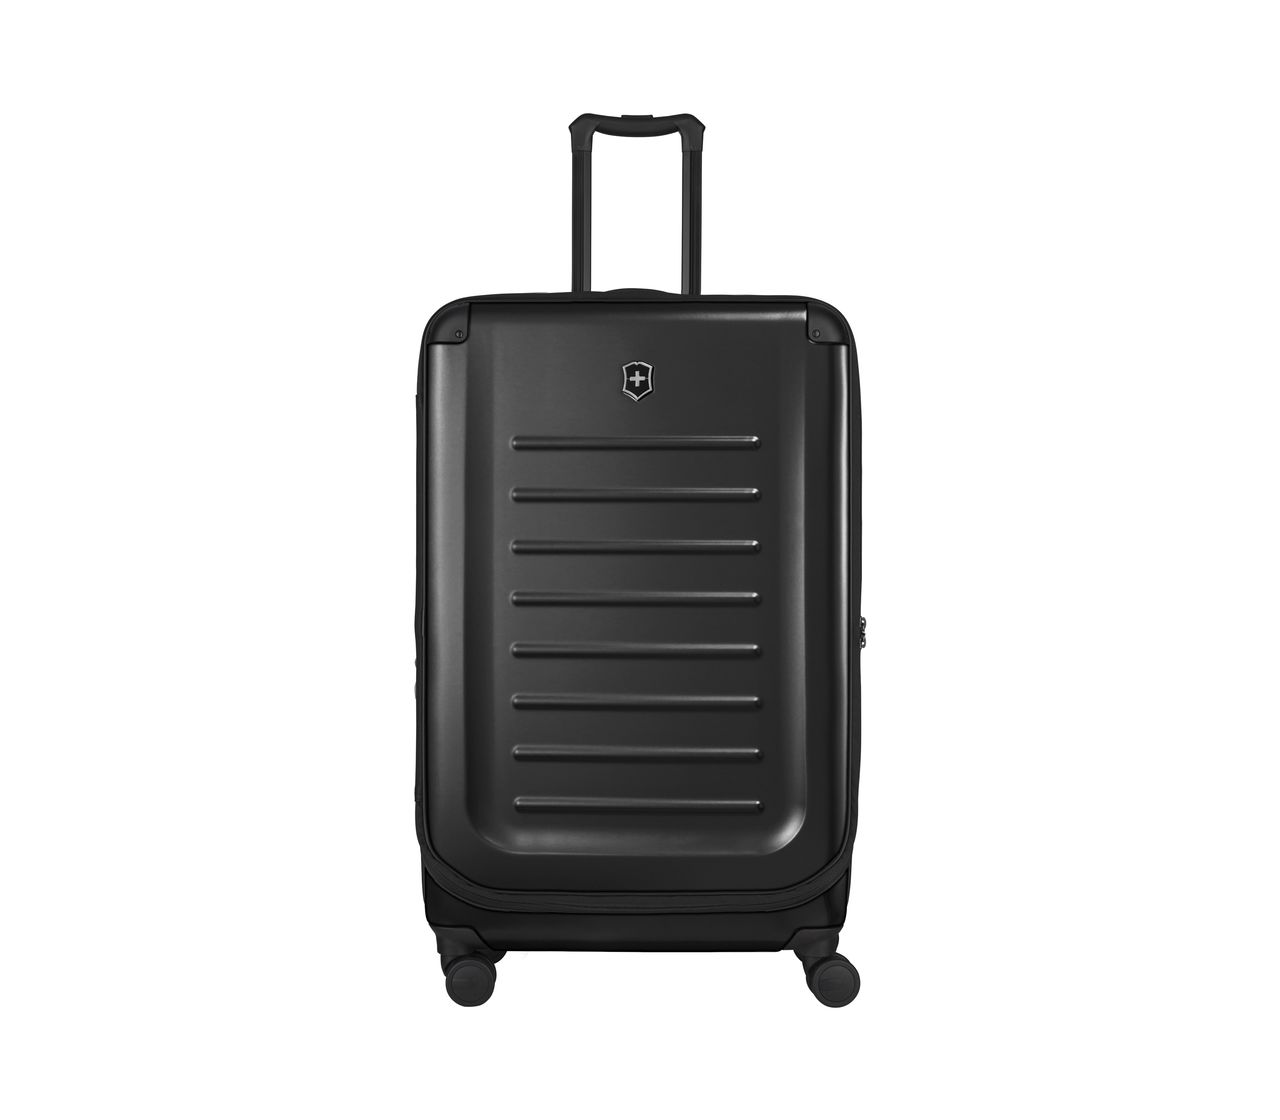 Spectra 2.0 Expandable Extra-Large Case-601294